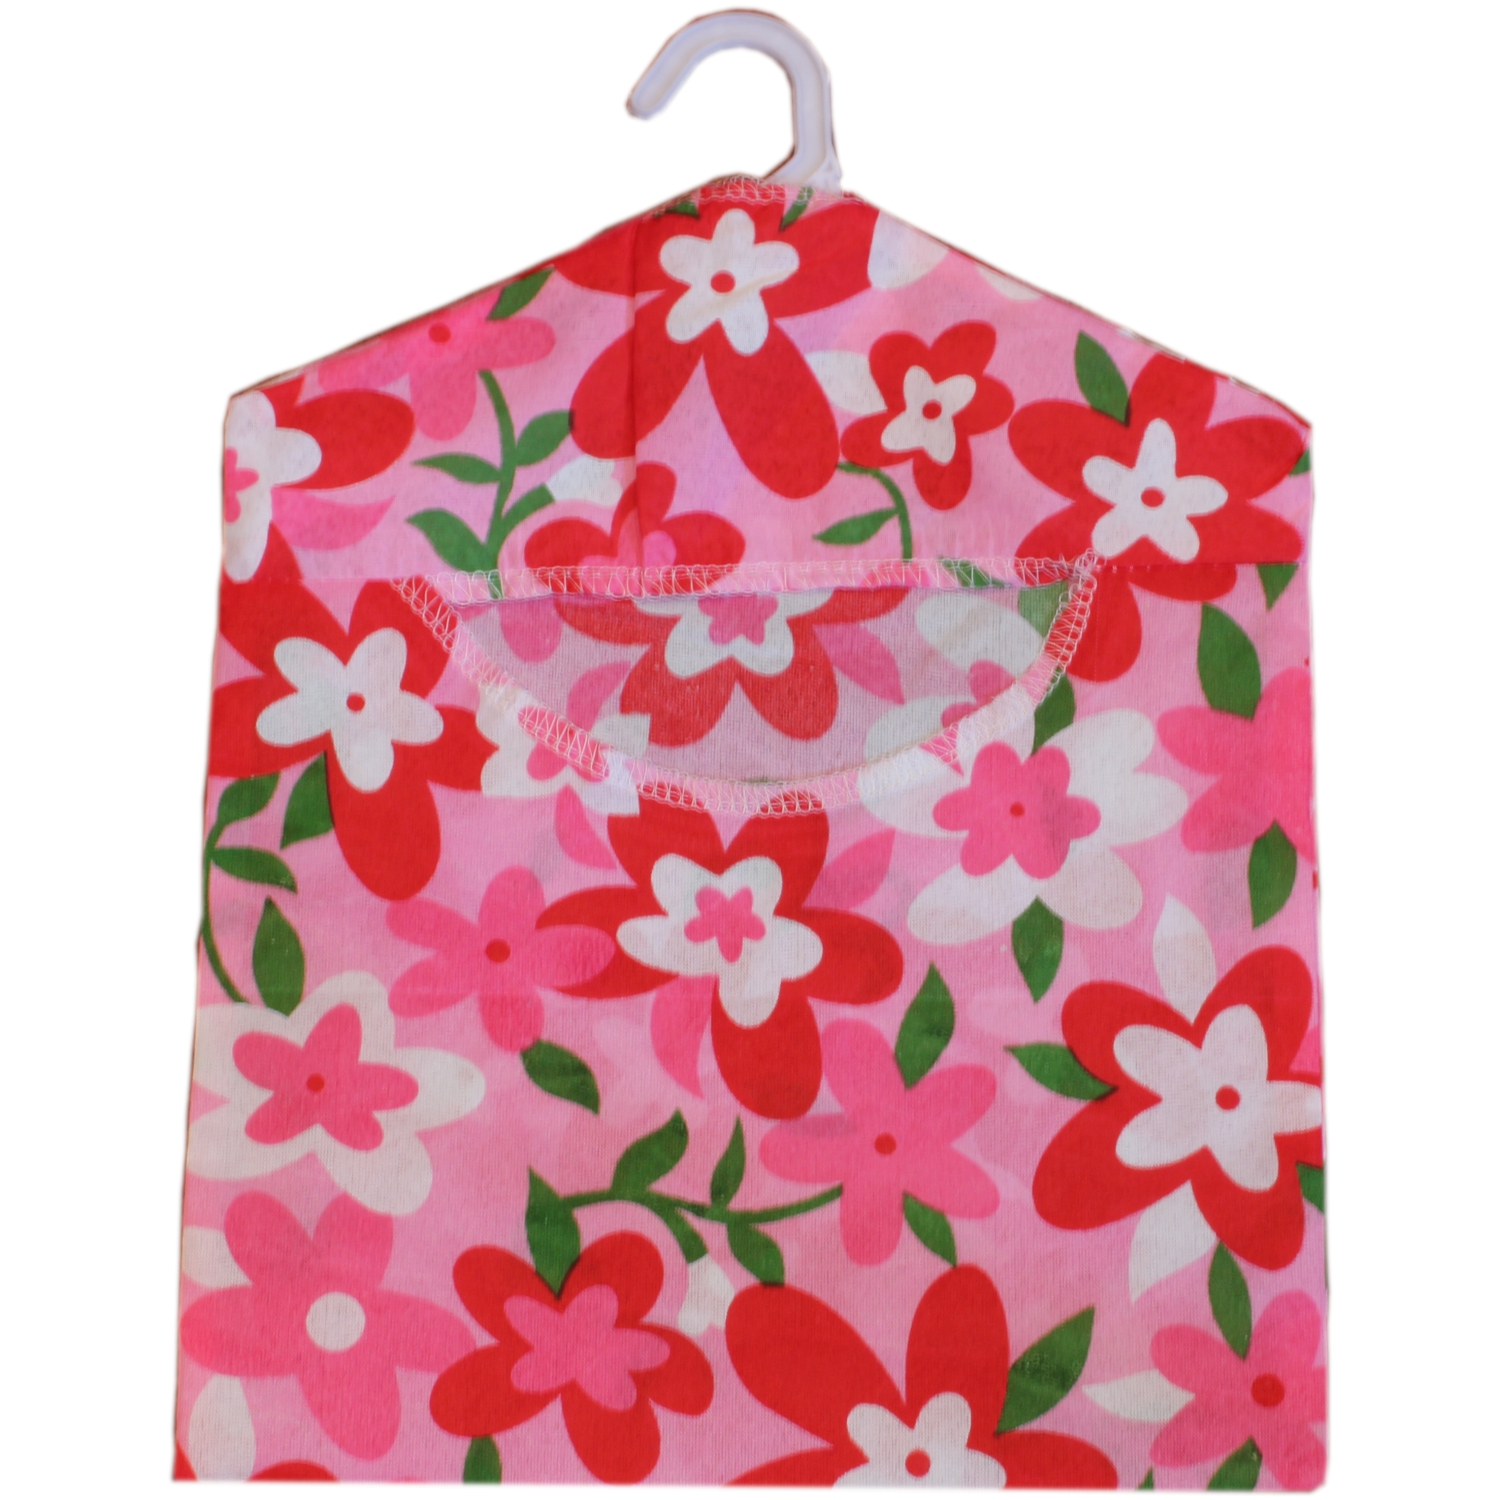 Economy Low Cost Red Floral Design Peg Bag